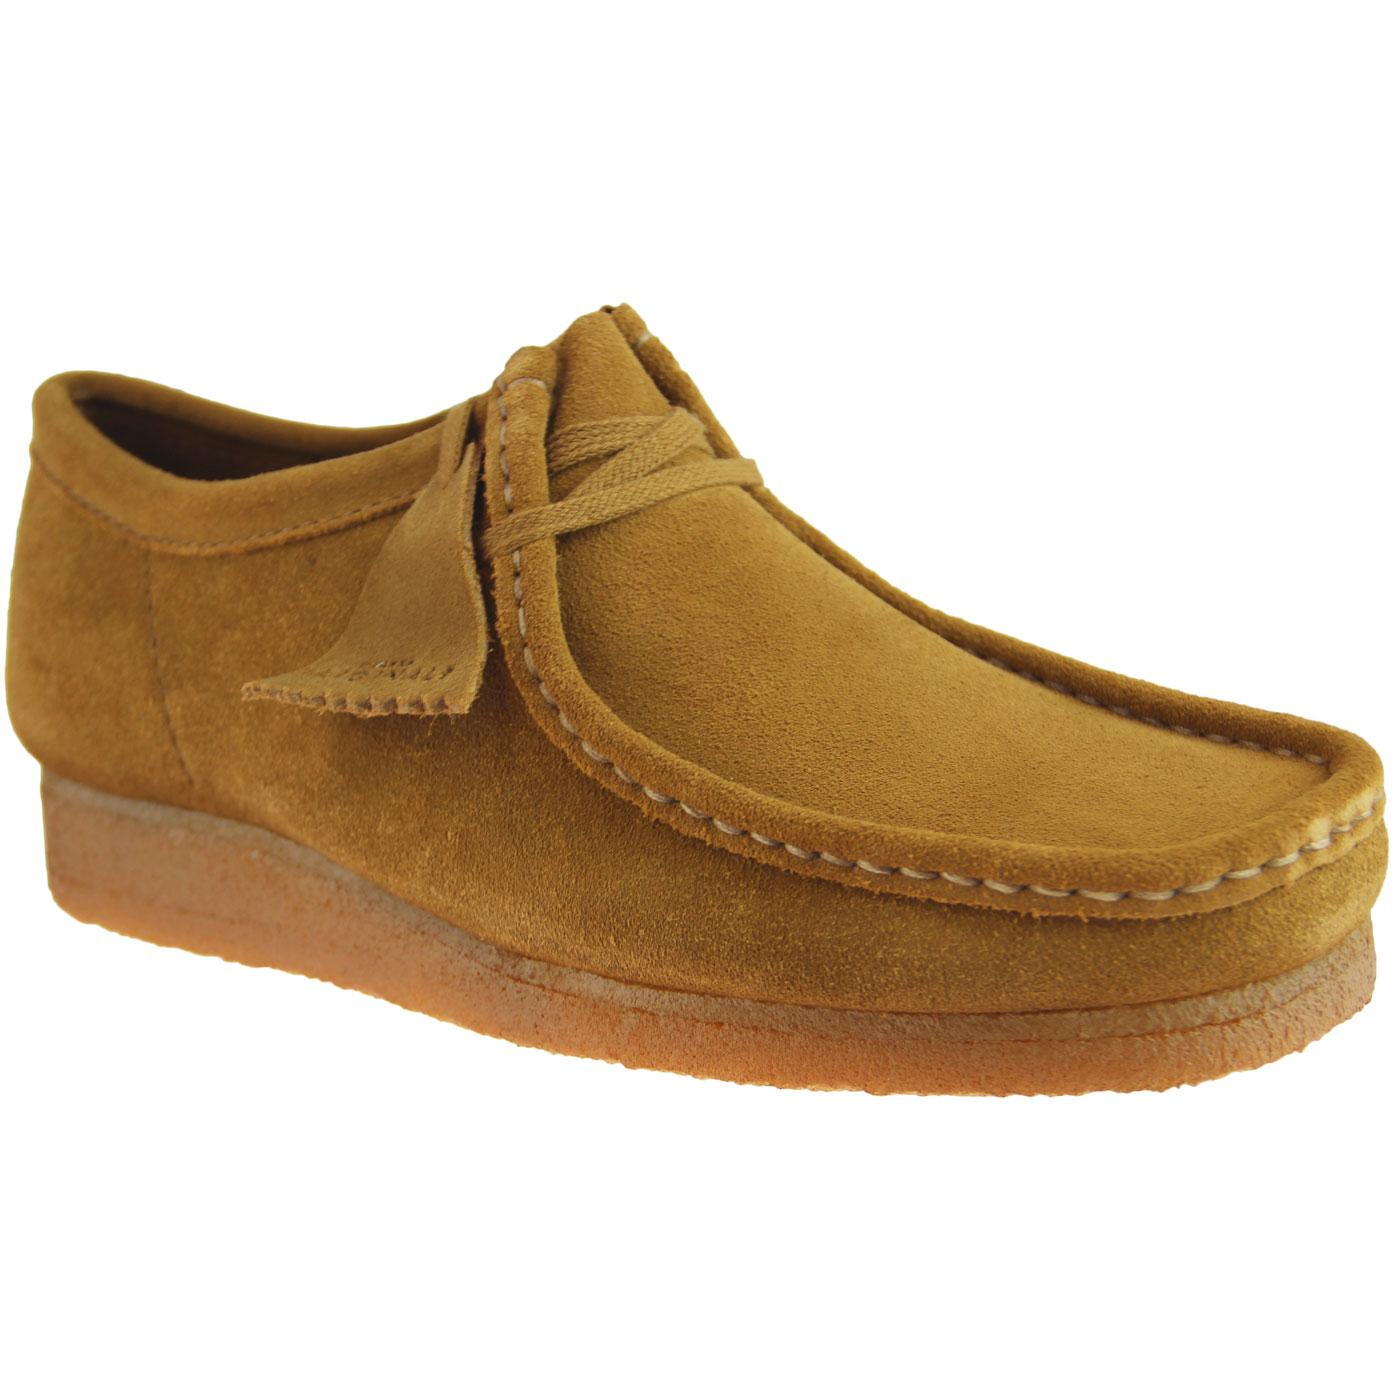 Wallabee CLARKS ORIGINALS Mod Moccasin Shoes Cola